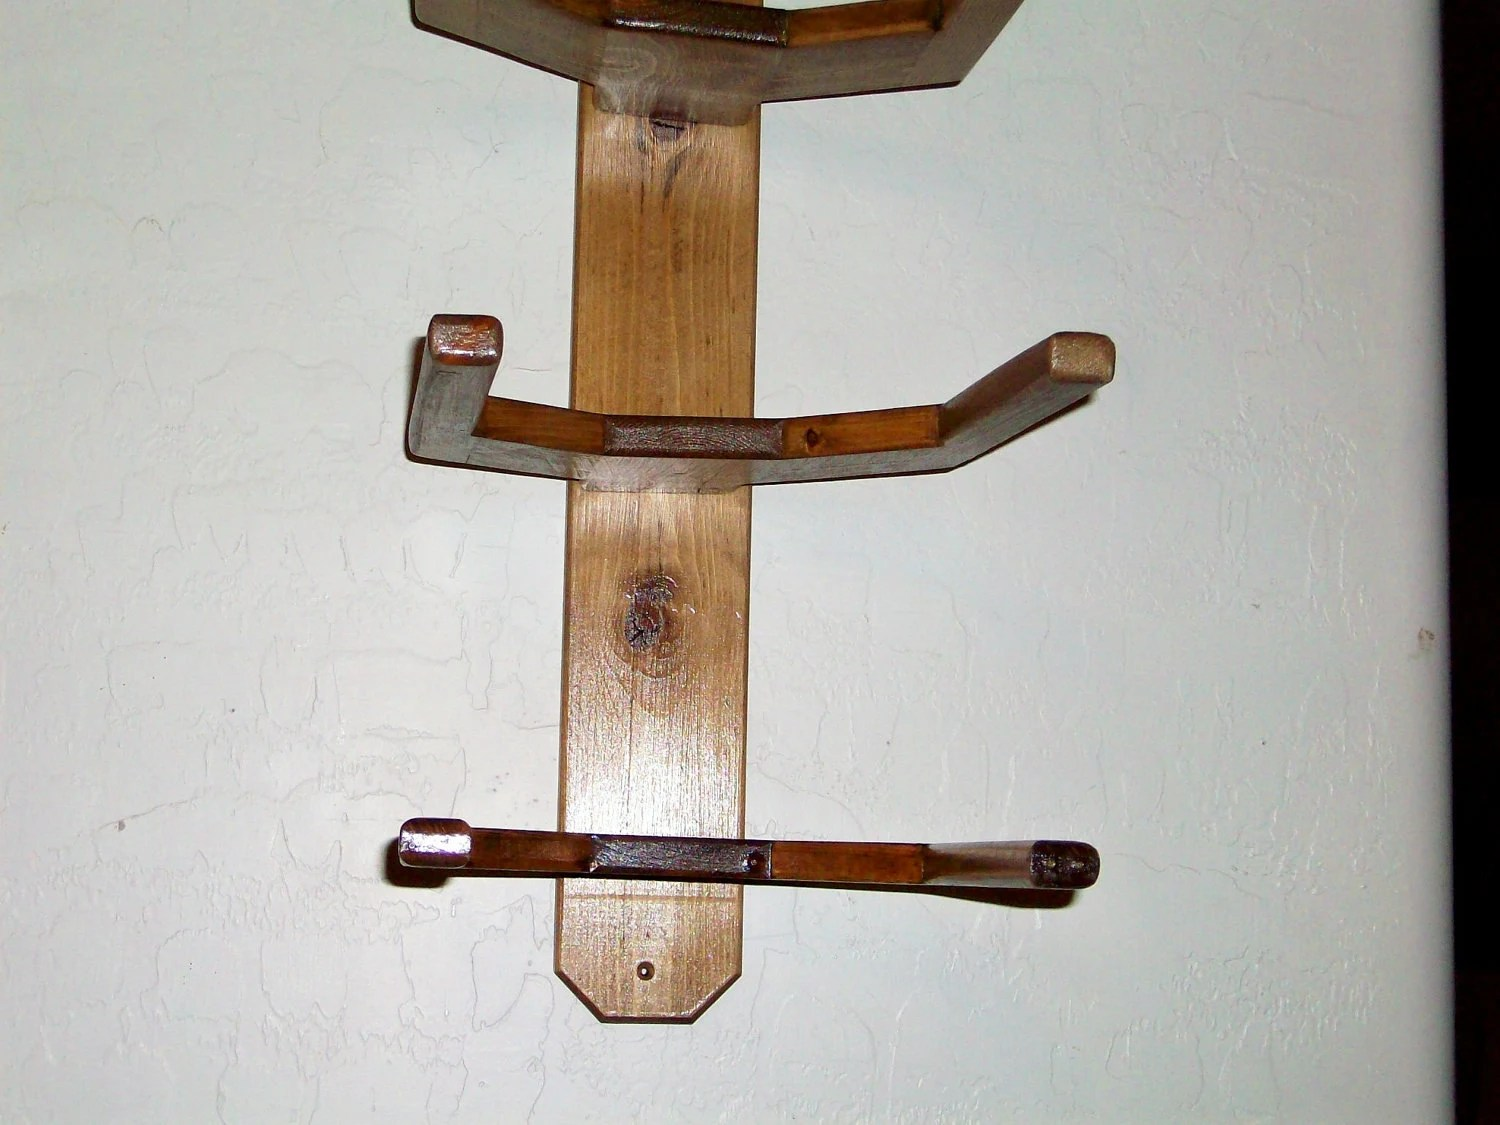 Hat Holders For Walls Cowboy Western Hat Rack Wall Mount For 3 Hats By Bormanrrranch